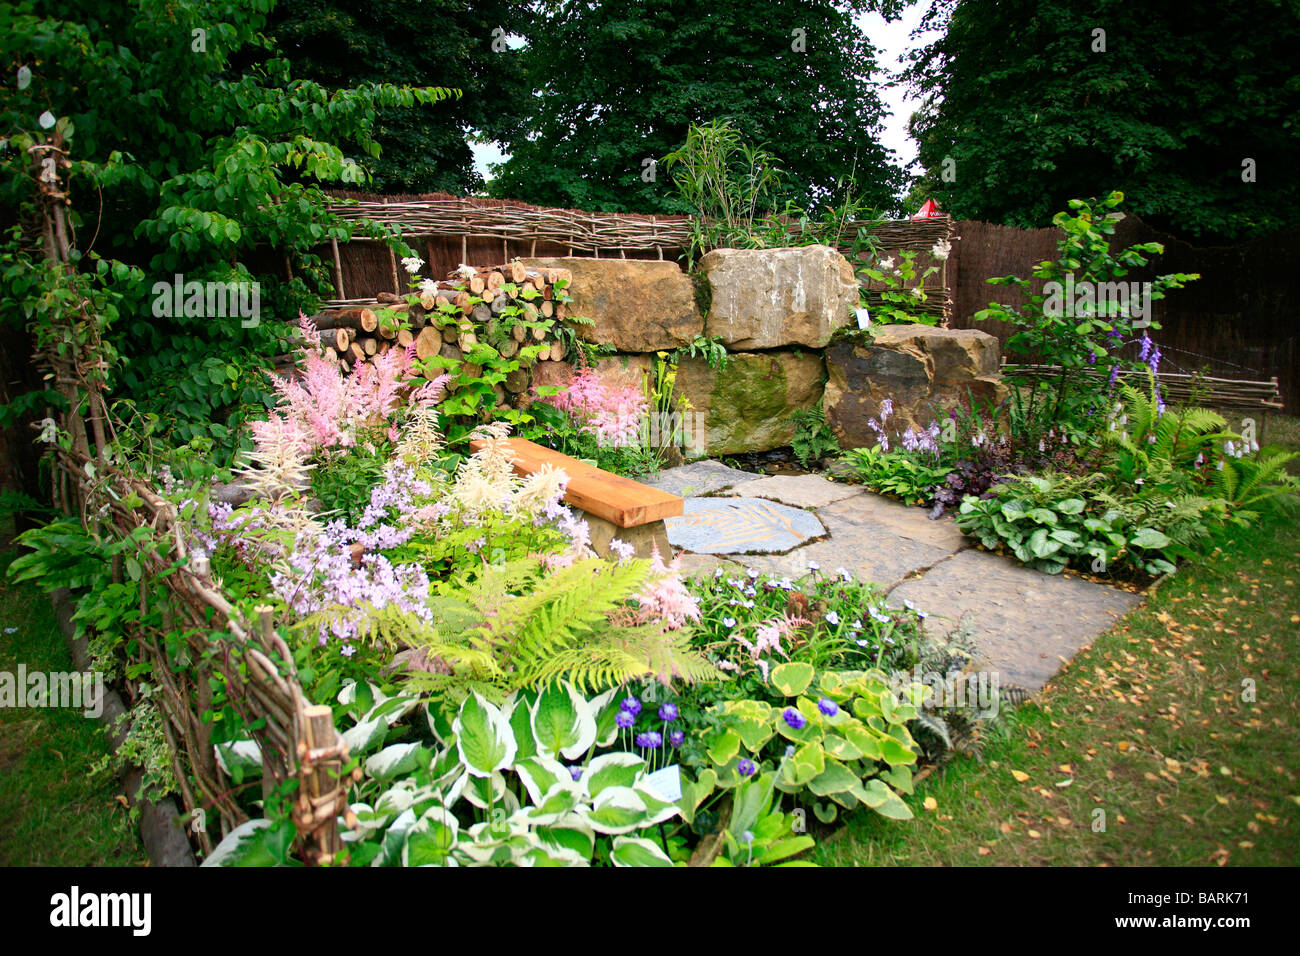 Show garden with rock wall and paved area, surounded by borders planted with perennials - Stock Image